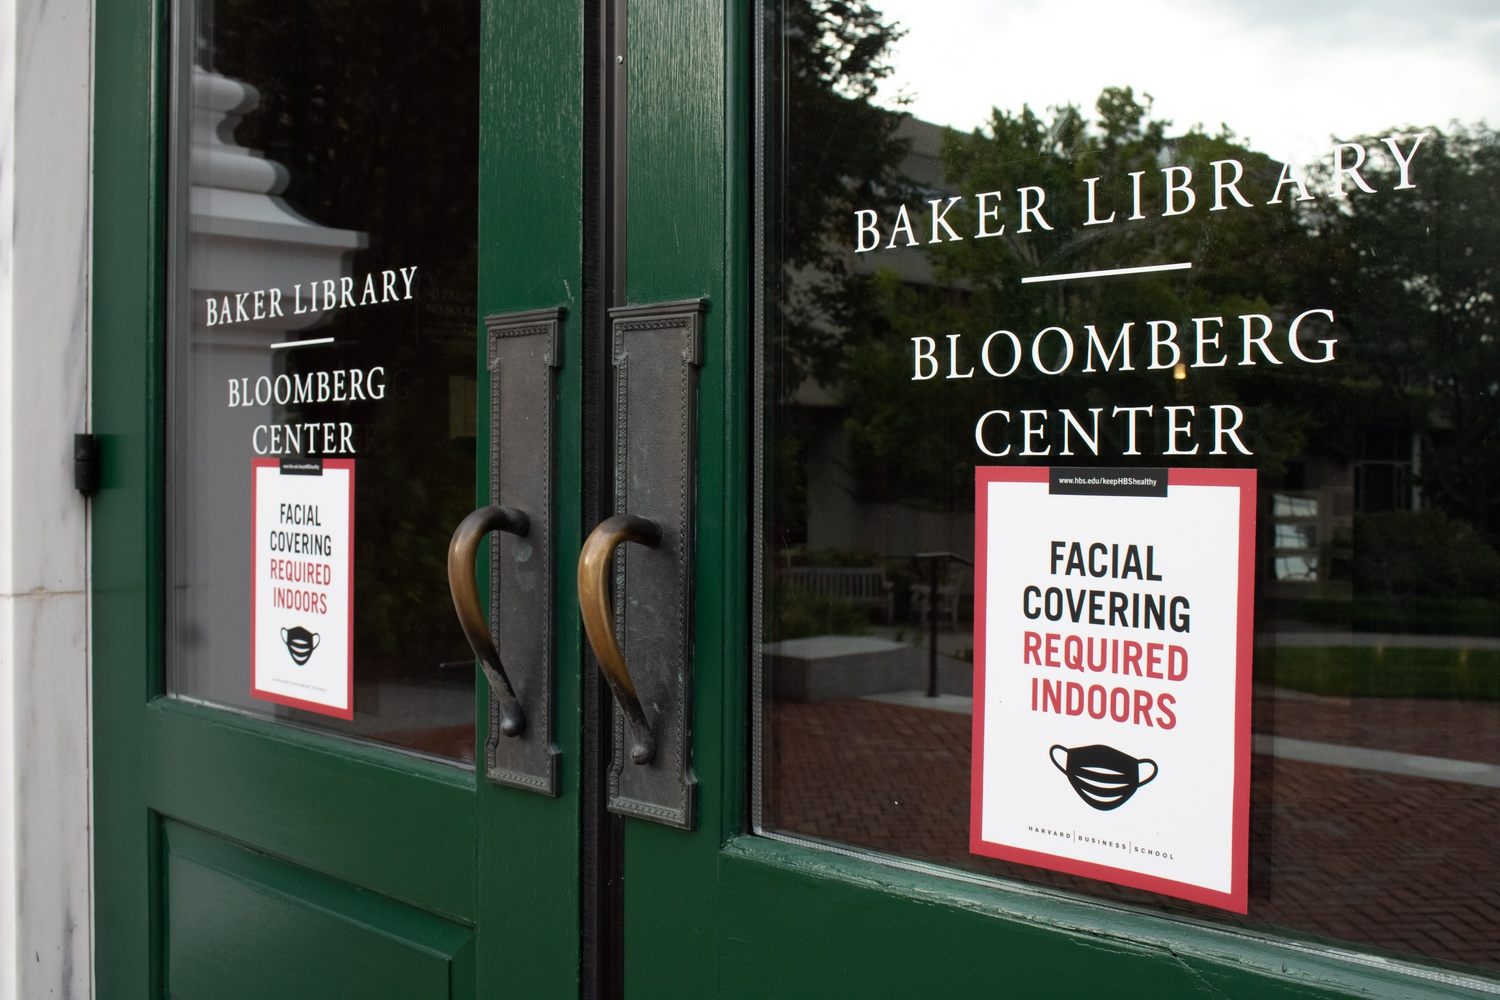 The Business School shifted some classes online this week after experiencing a coronavirus outbreak among its students.